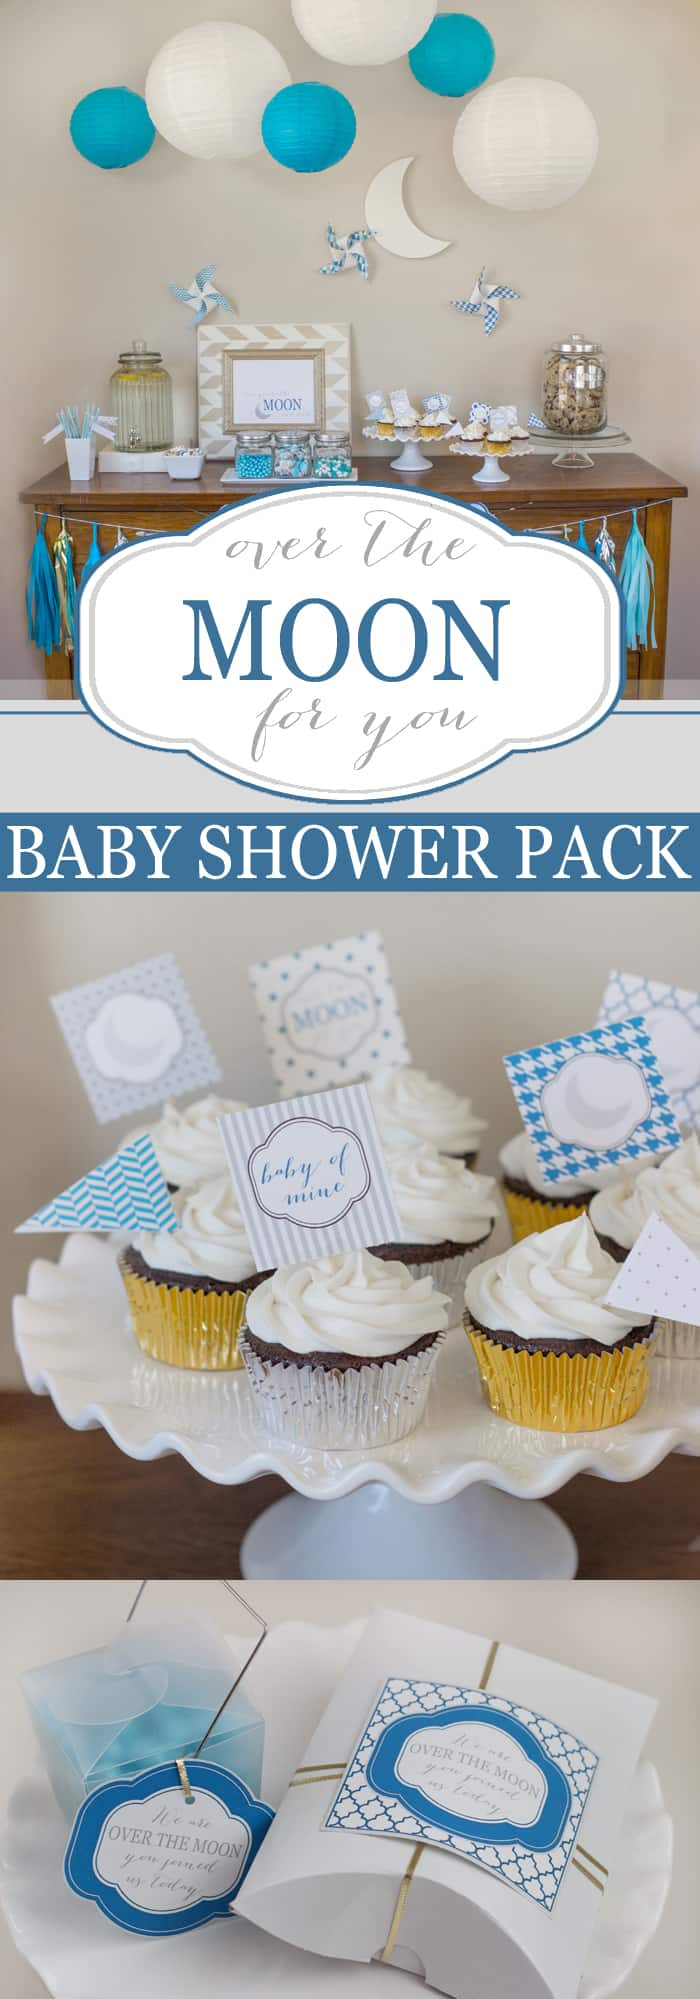 Quot Over The Moon For You Quot Printable Baby Shower Pack